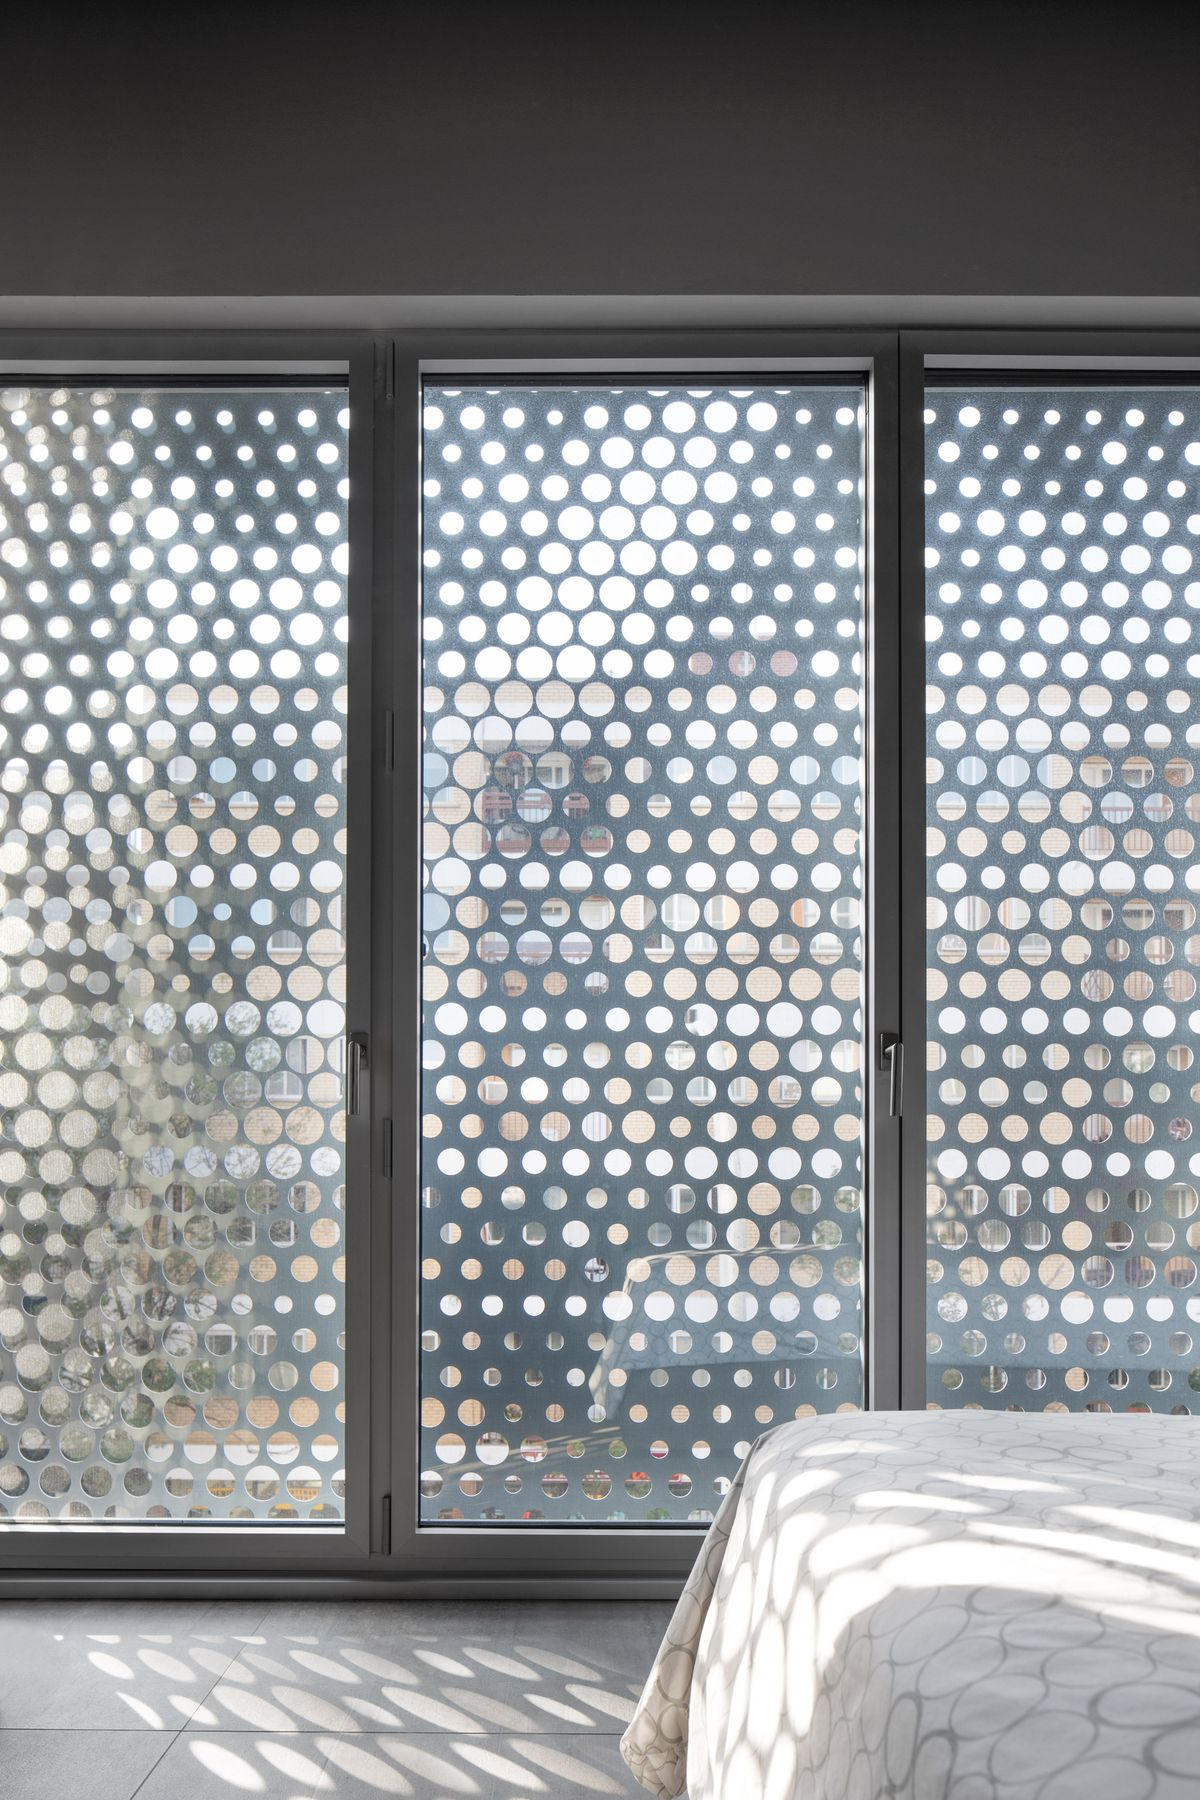 Perforated screen in the bedroom.